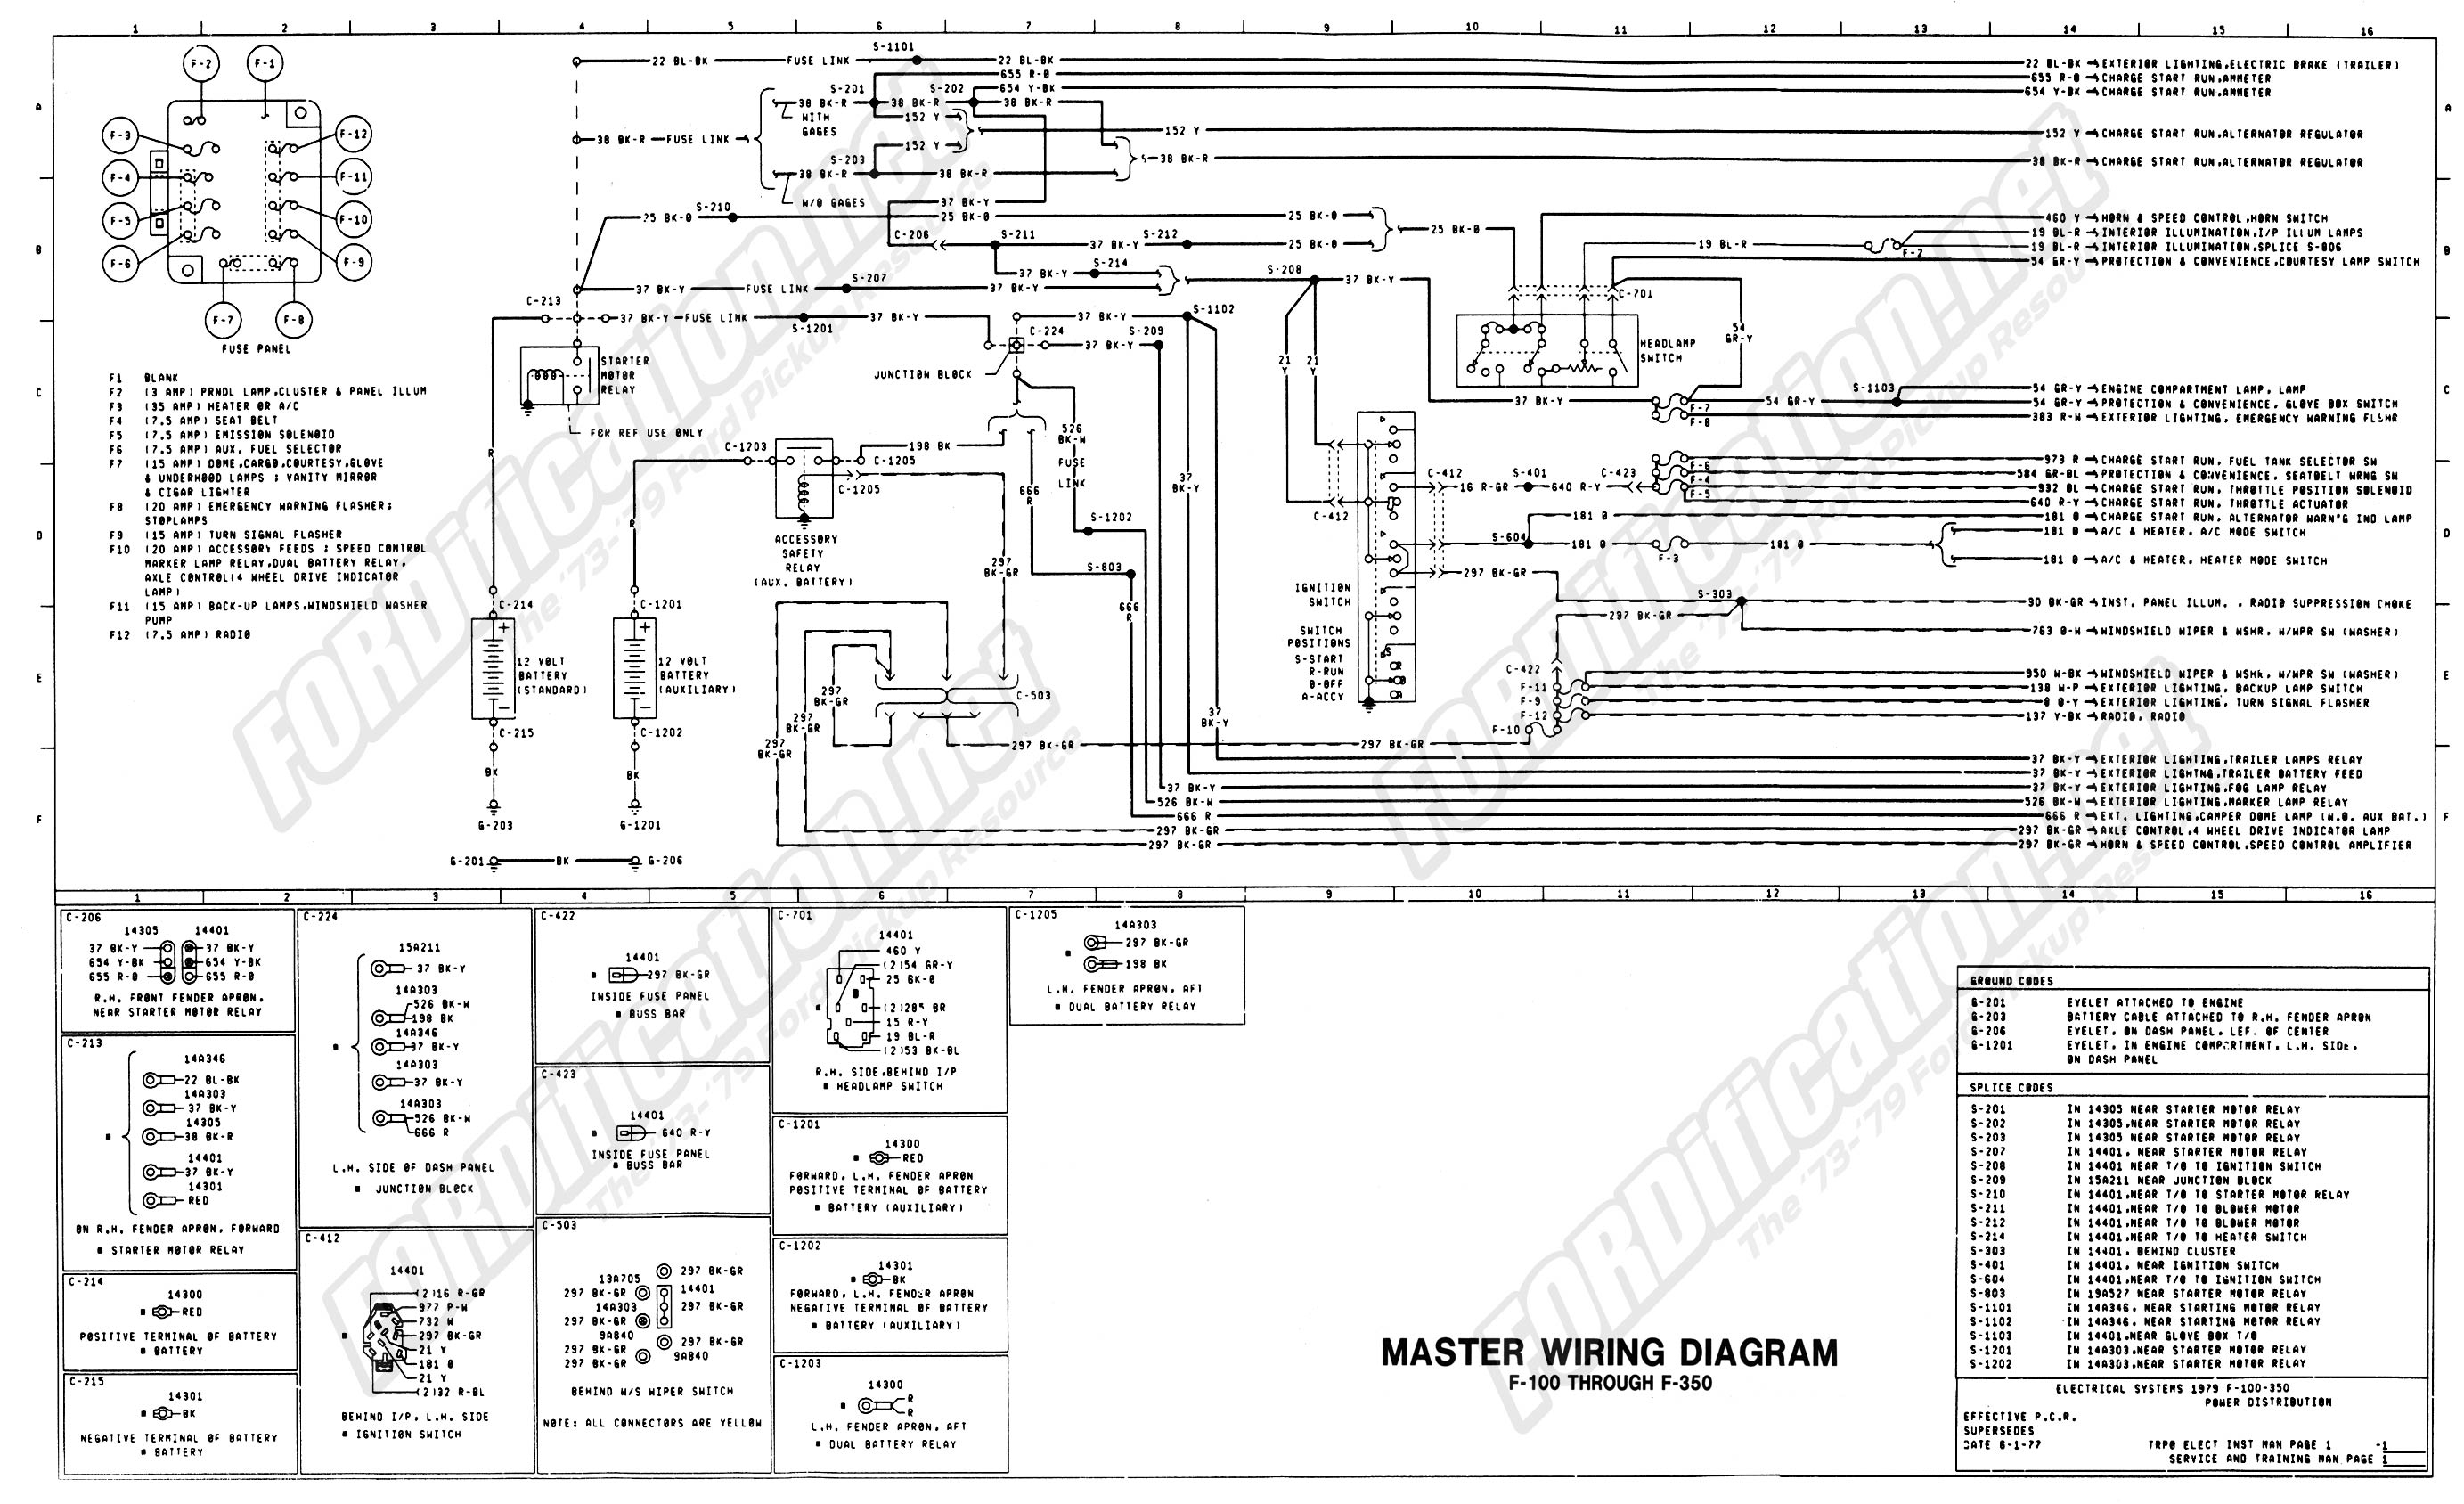 1988 ford f150 radio wiring diagram gallery